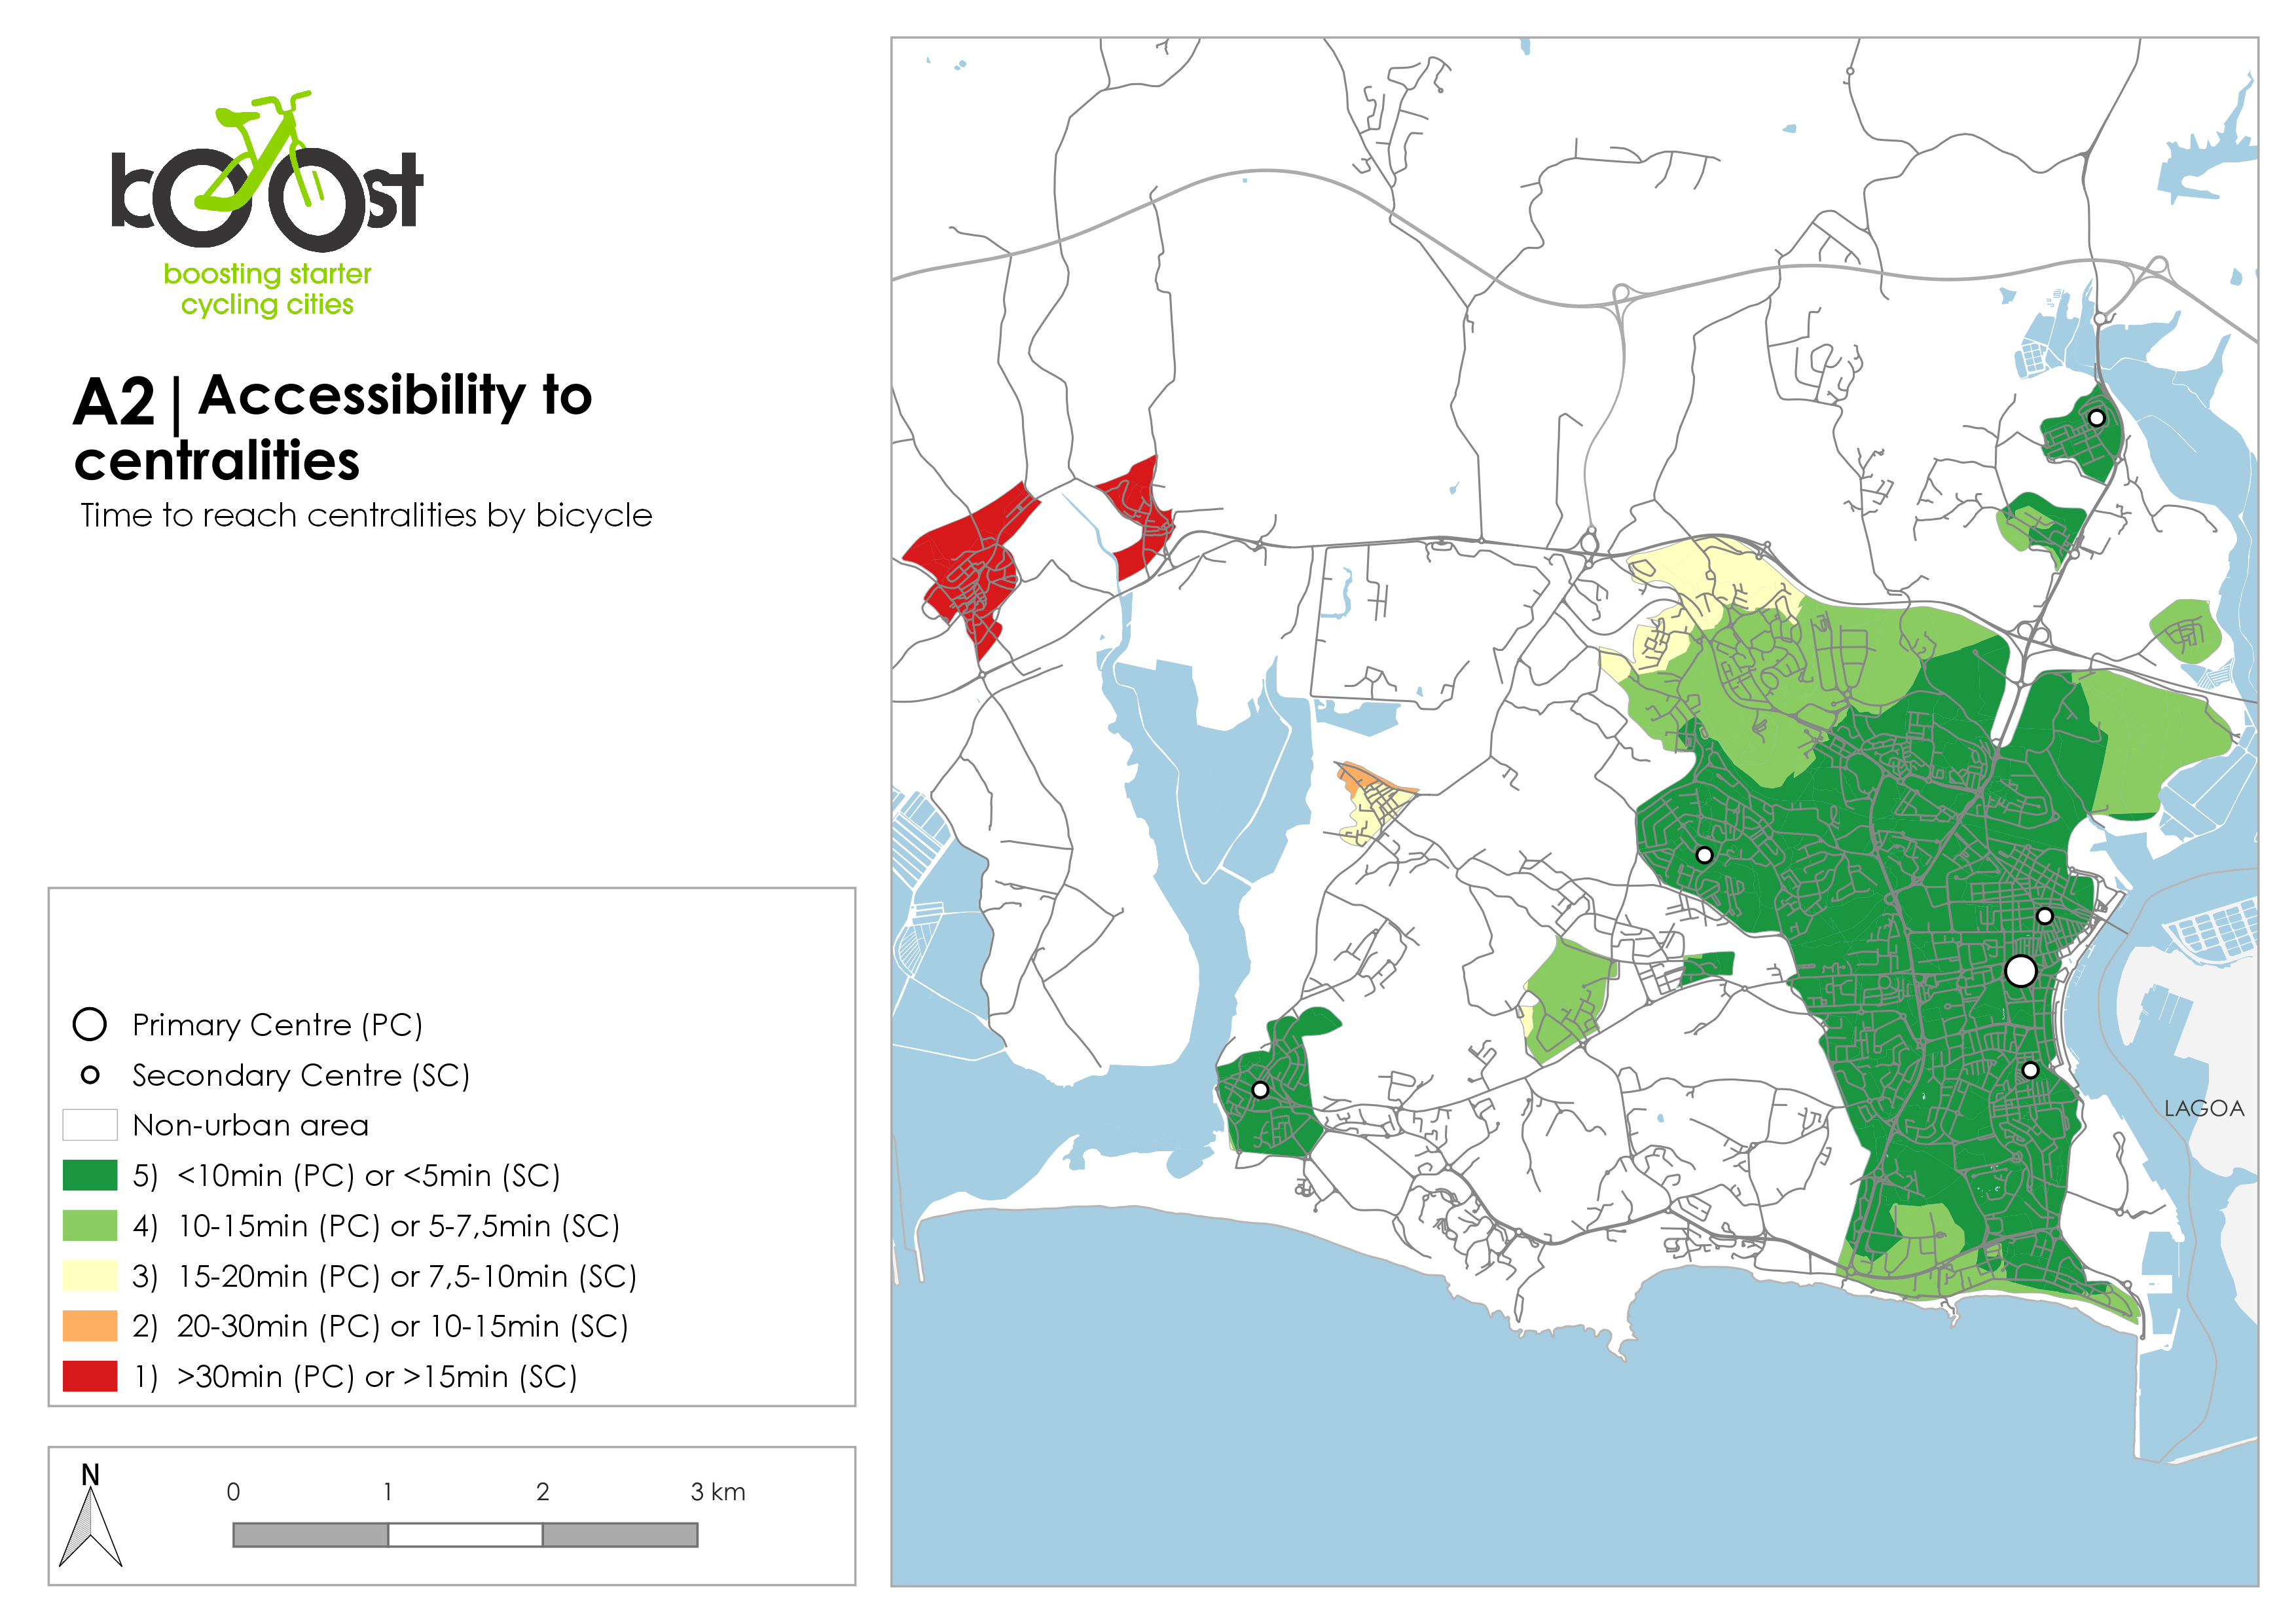 A2   Accessibility to centralities